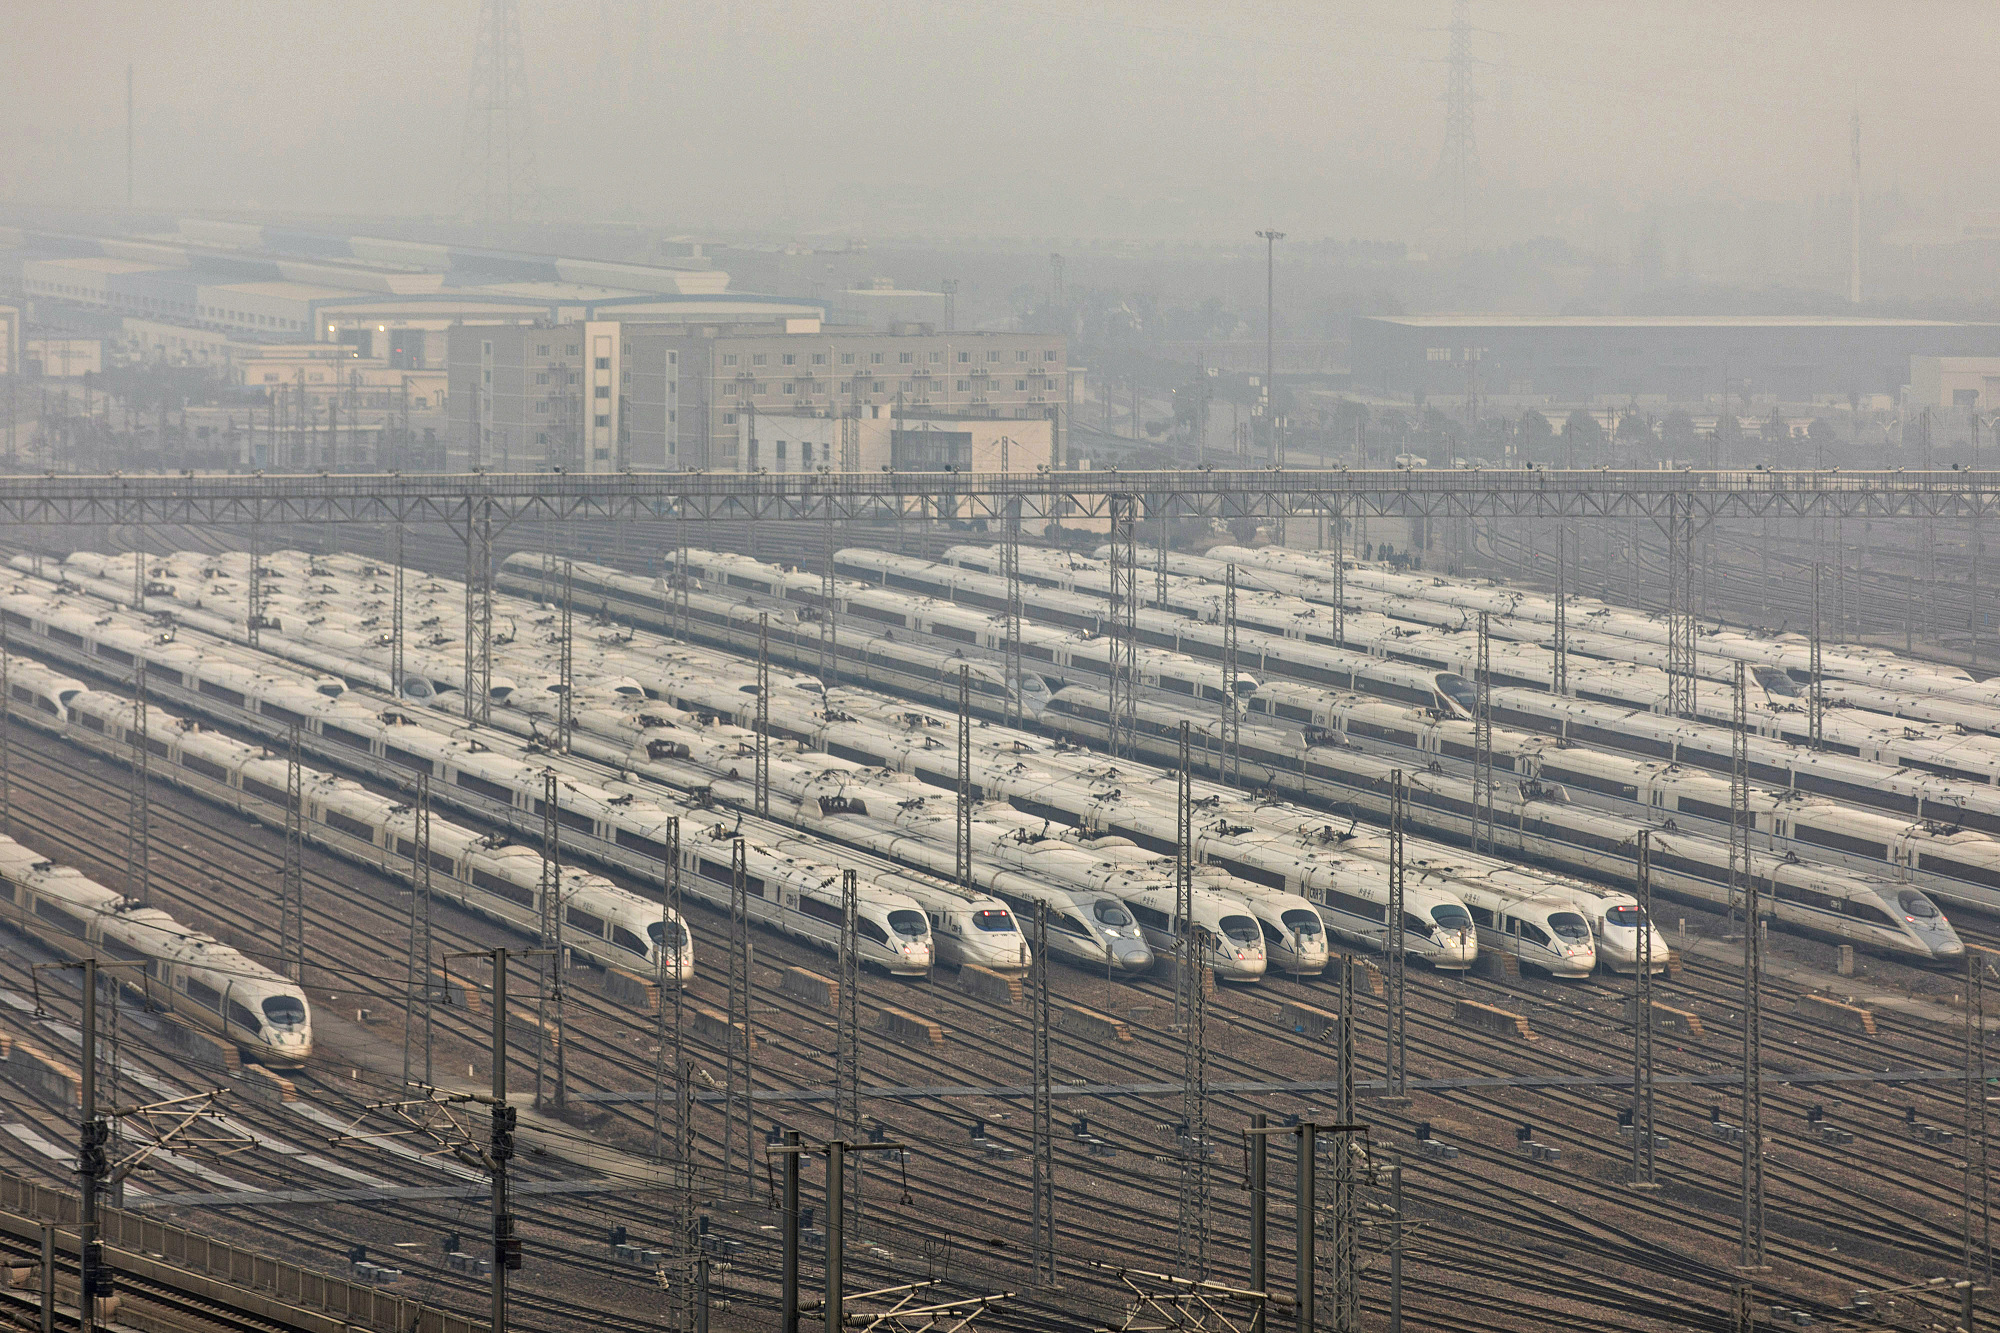 High-speed bullet trains operated by China Railway Corp. sit in a train yard shrouded in haze on the outskirts of Shanghai on Thursday.   BLOOMBERG